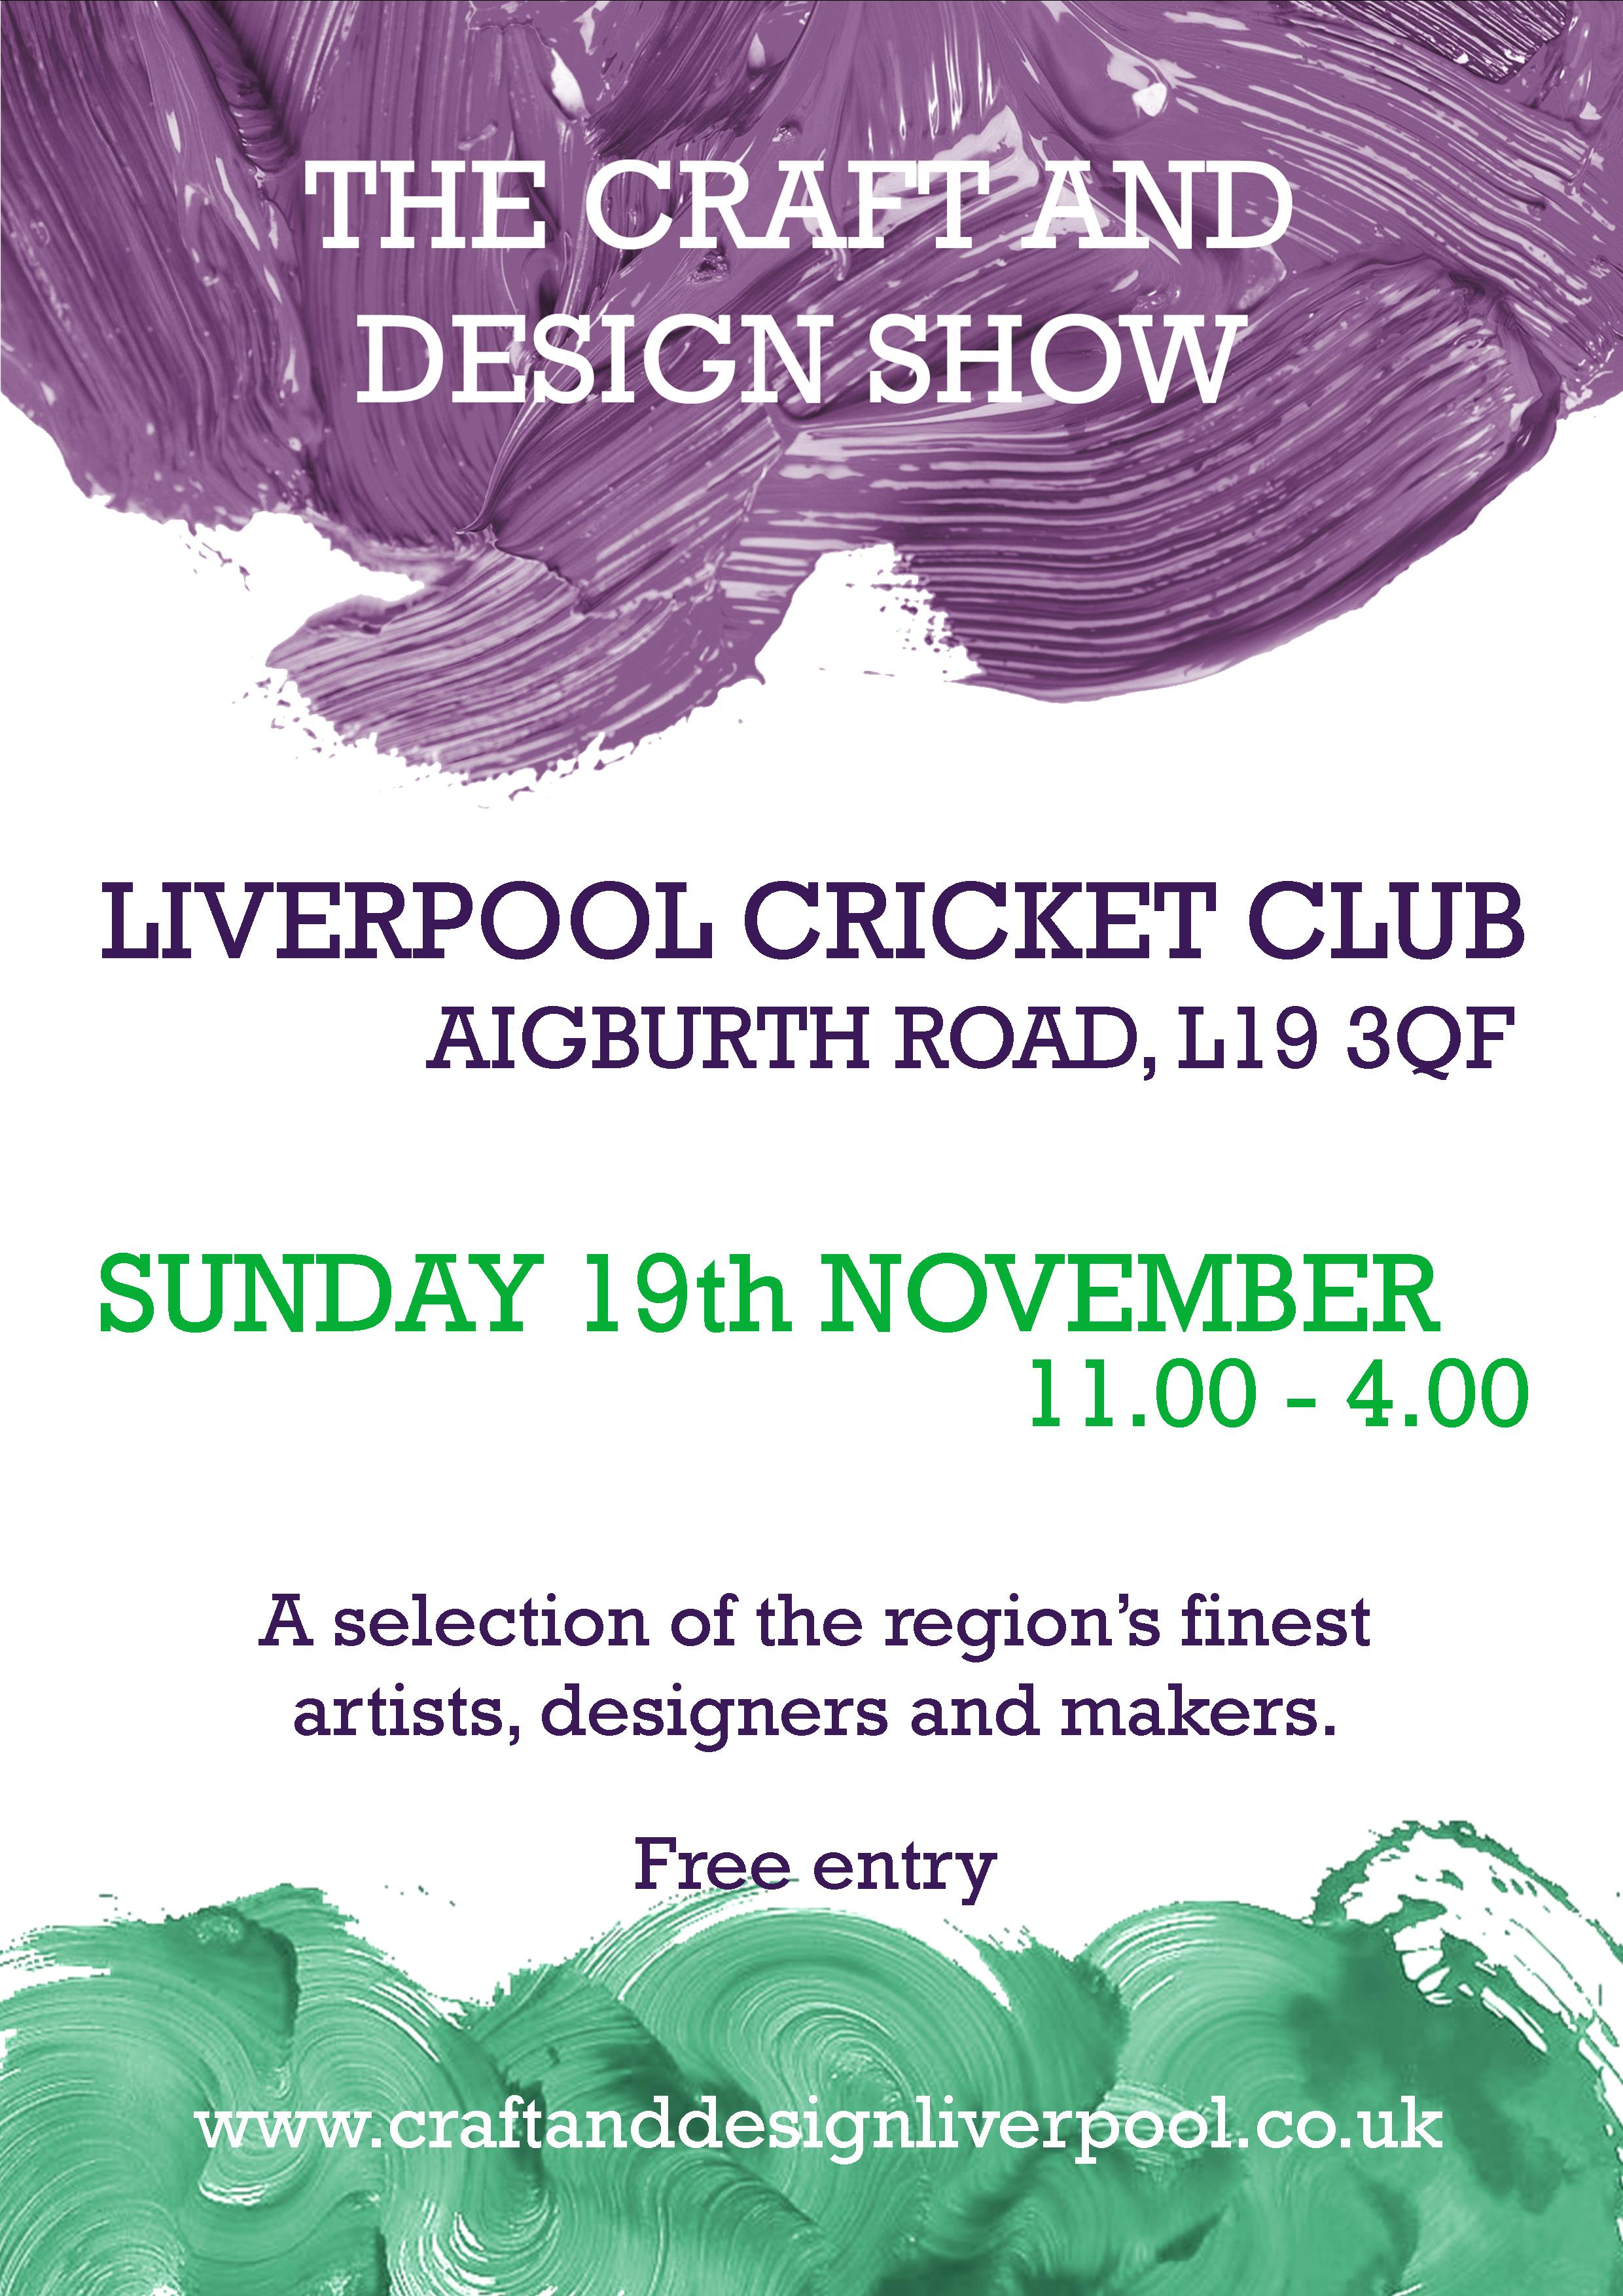 Liverpool Cricket Club: The Craft and Design Show 2017